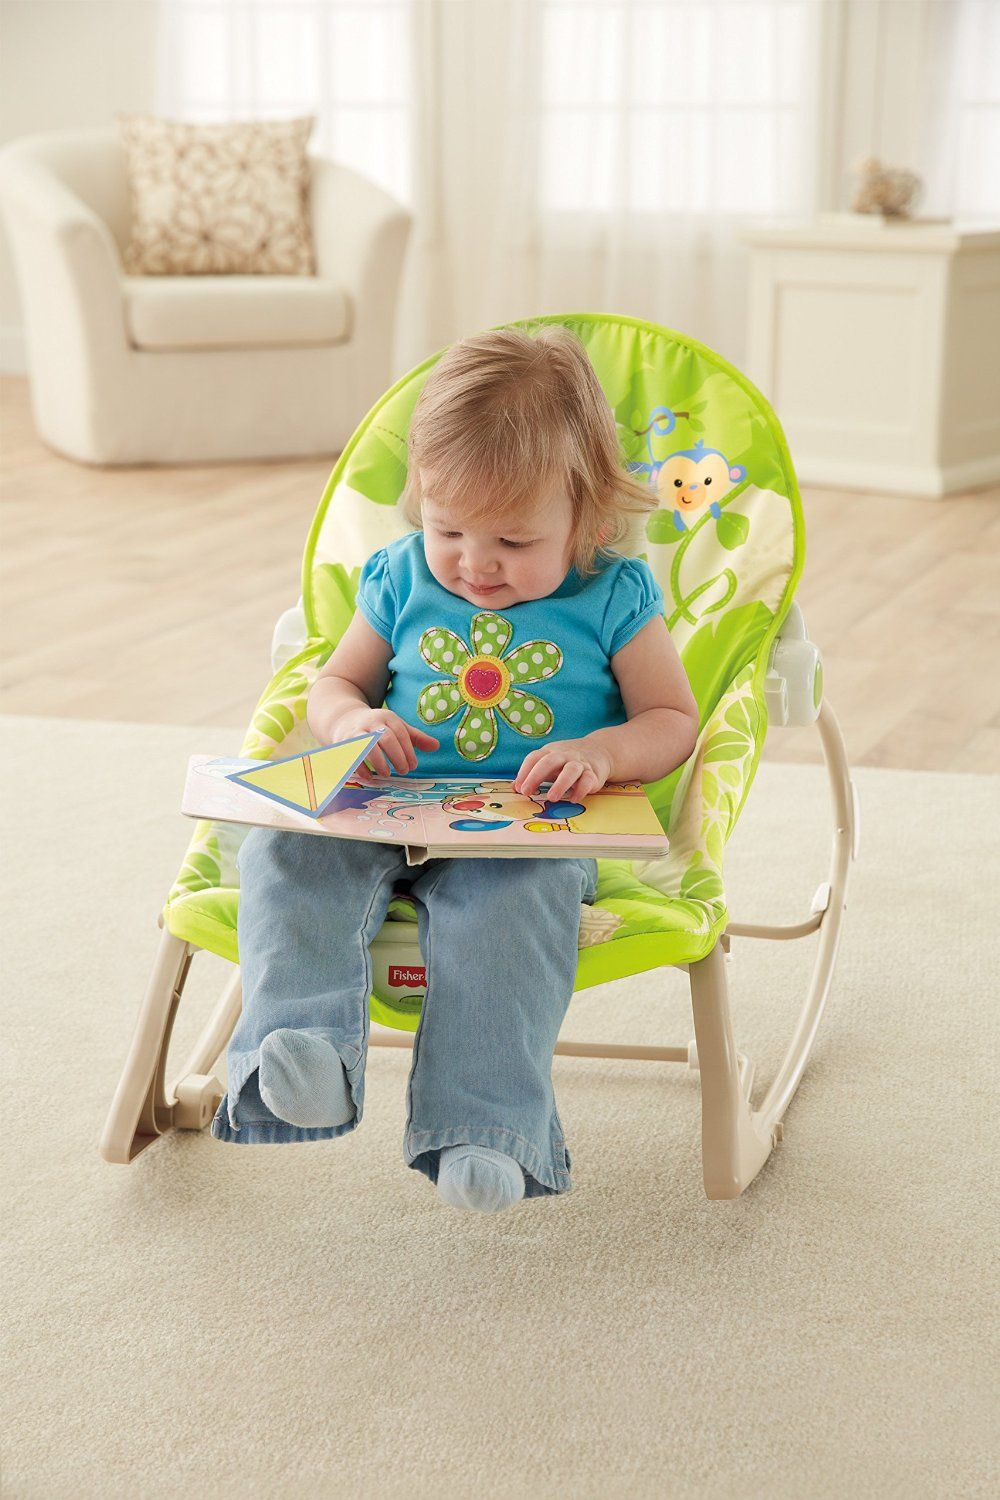 fisher-price infant to toddler rocker available online at http